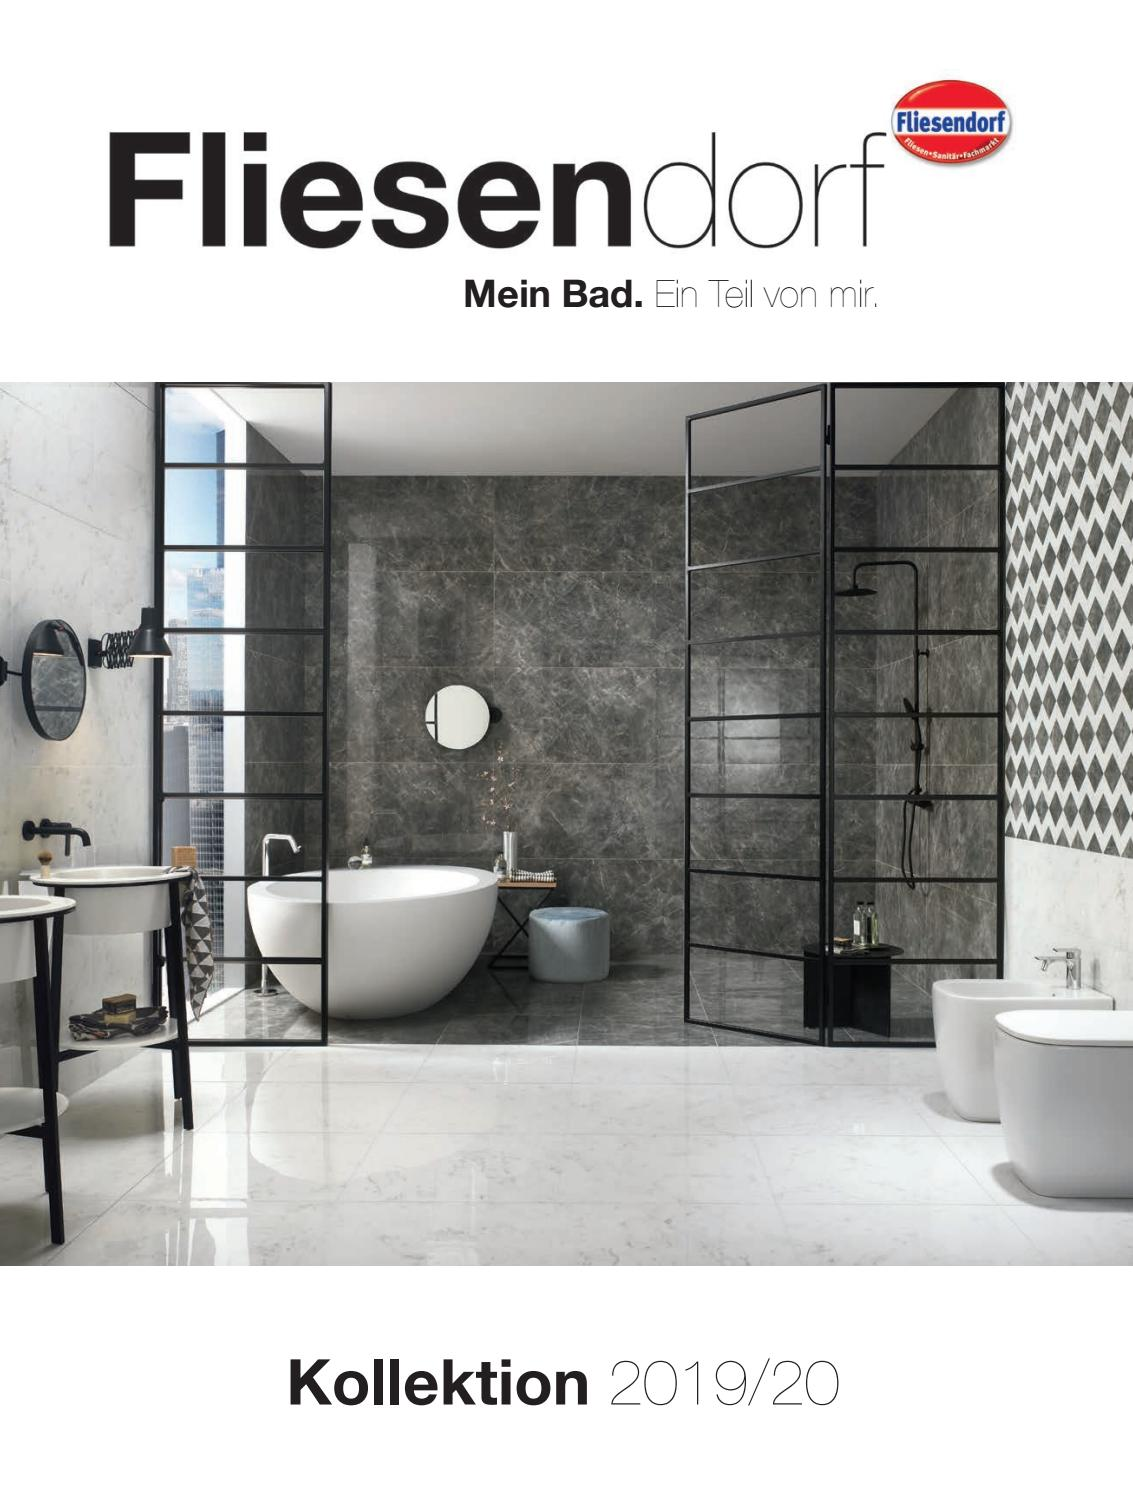 Grosse Marmoroptik Fliesen Fliesendorf Kollektion 2019 20 By Fliesendorf At Issuu